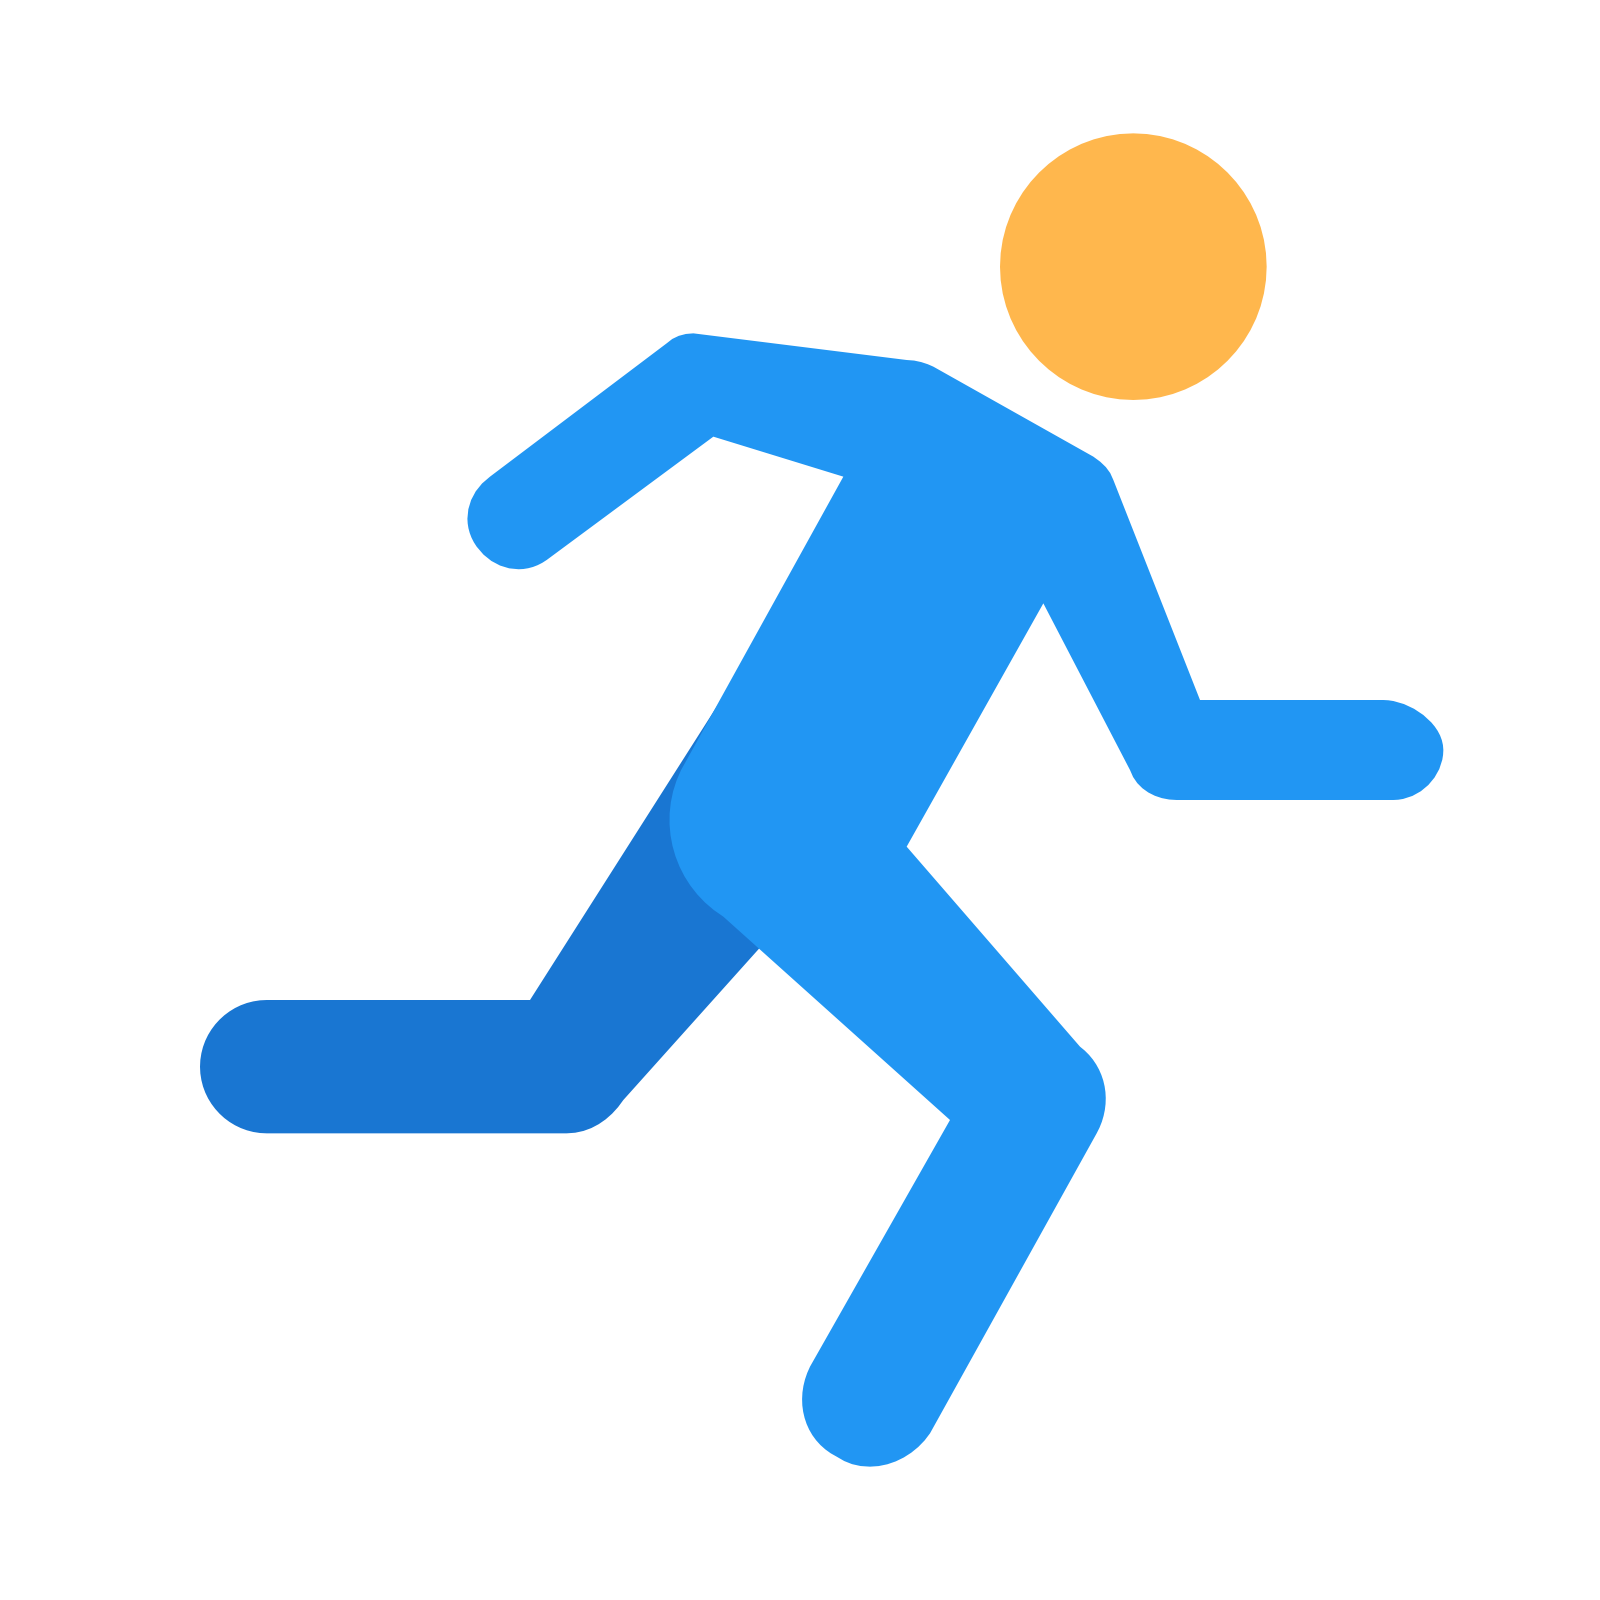 running icon download icons #26105